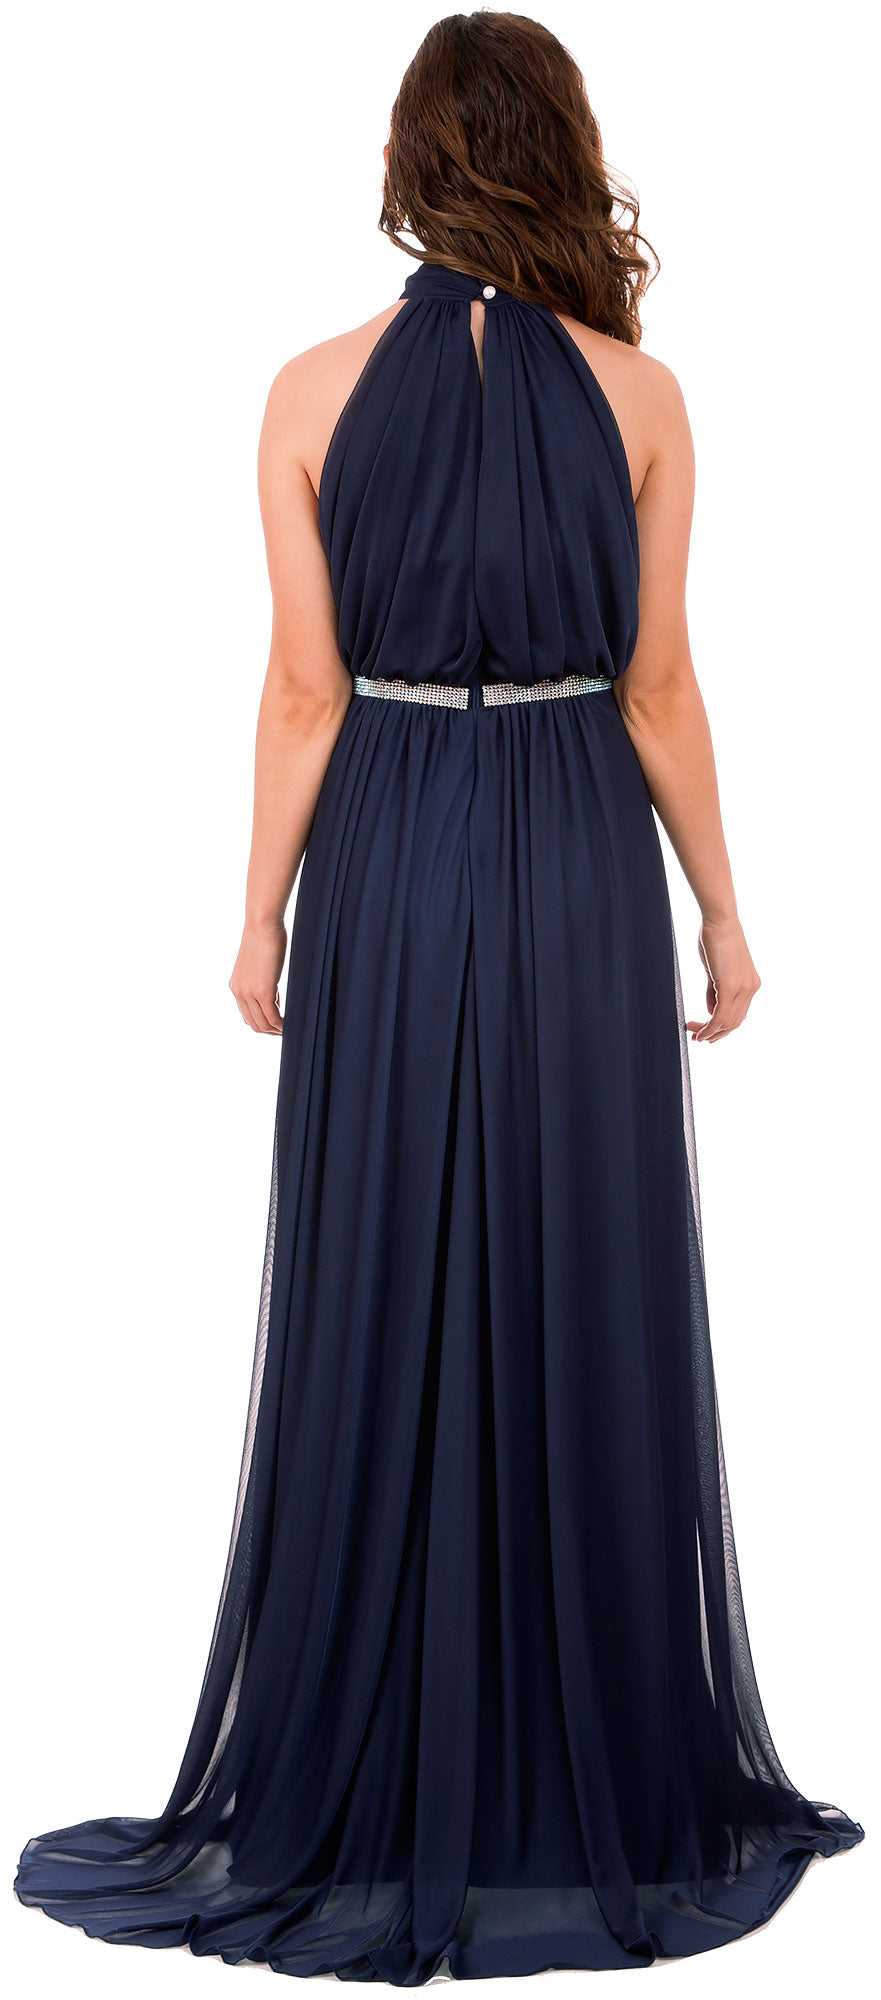 Image of High Halter Neck Long Formal Bridesmaid Dress With Keyhole back in Navy